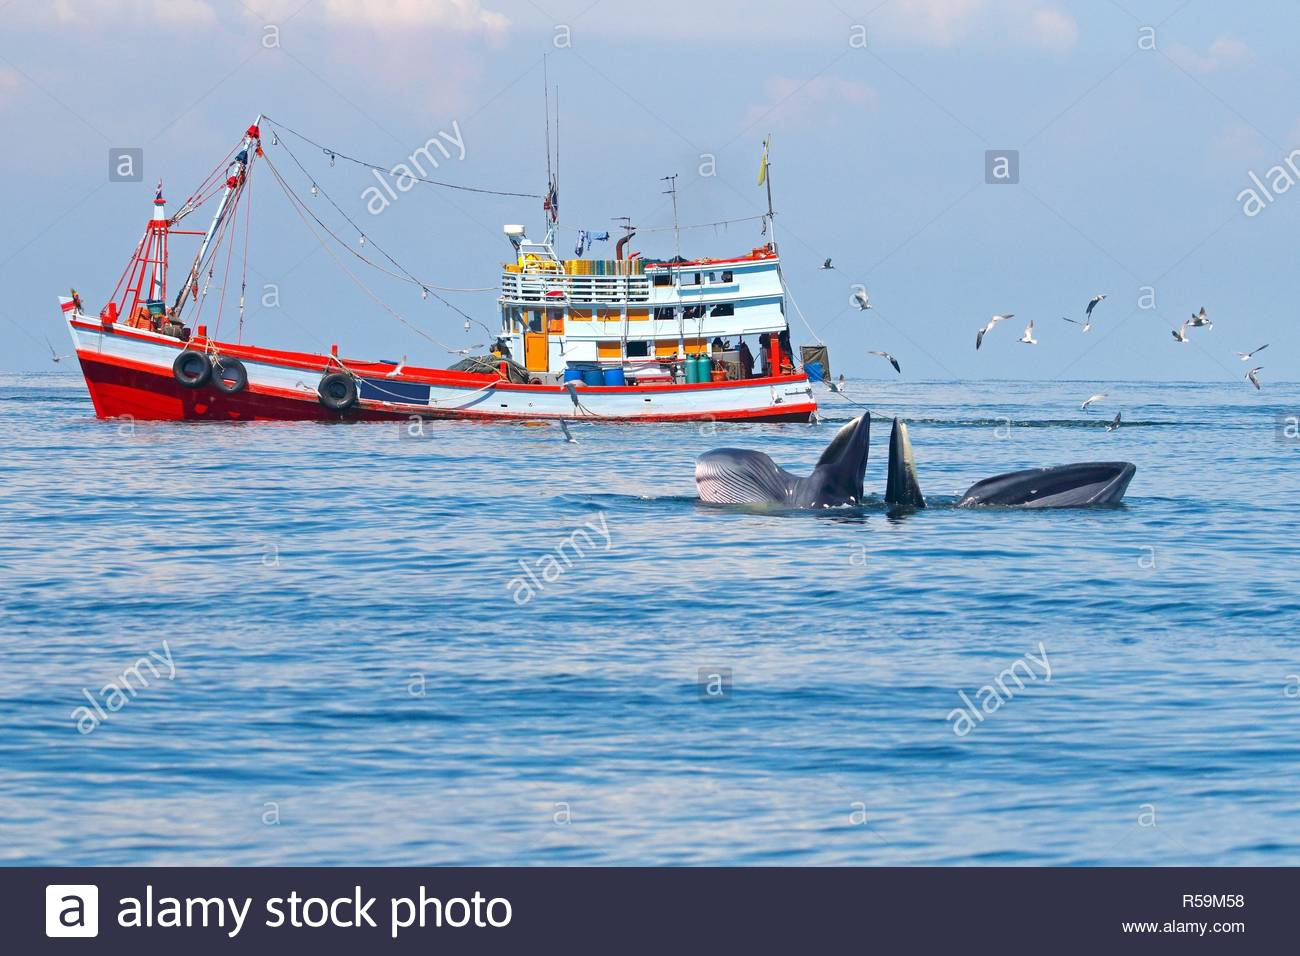 Bryde's Whale Balaenoptera edeni and fishing boat in the sea - Stock Image